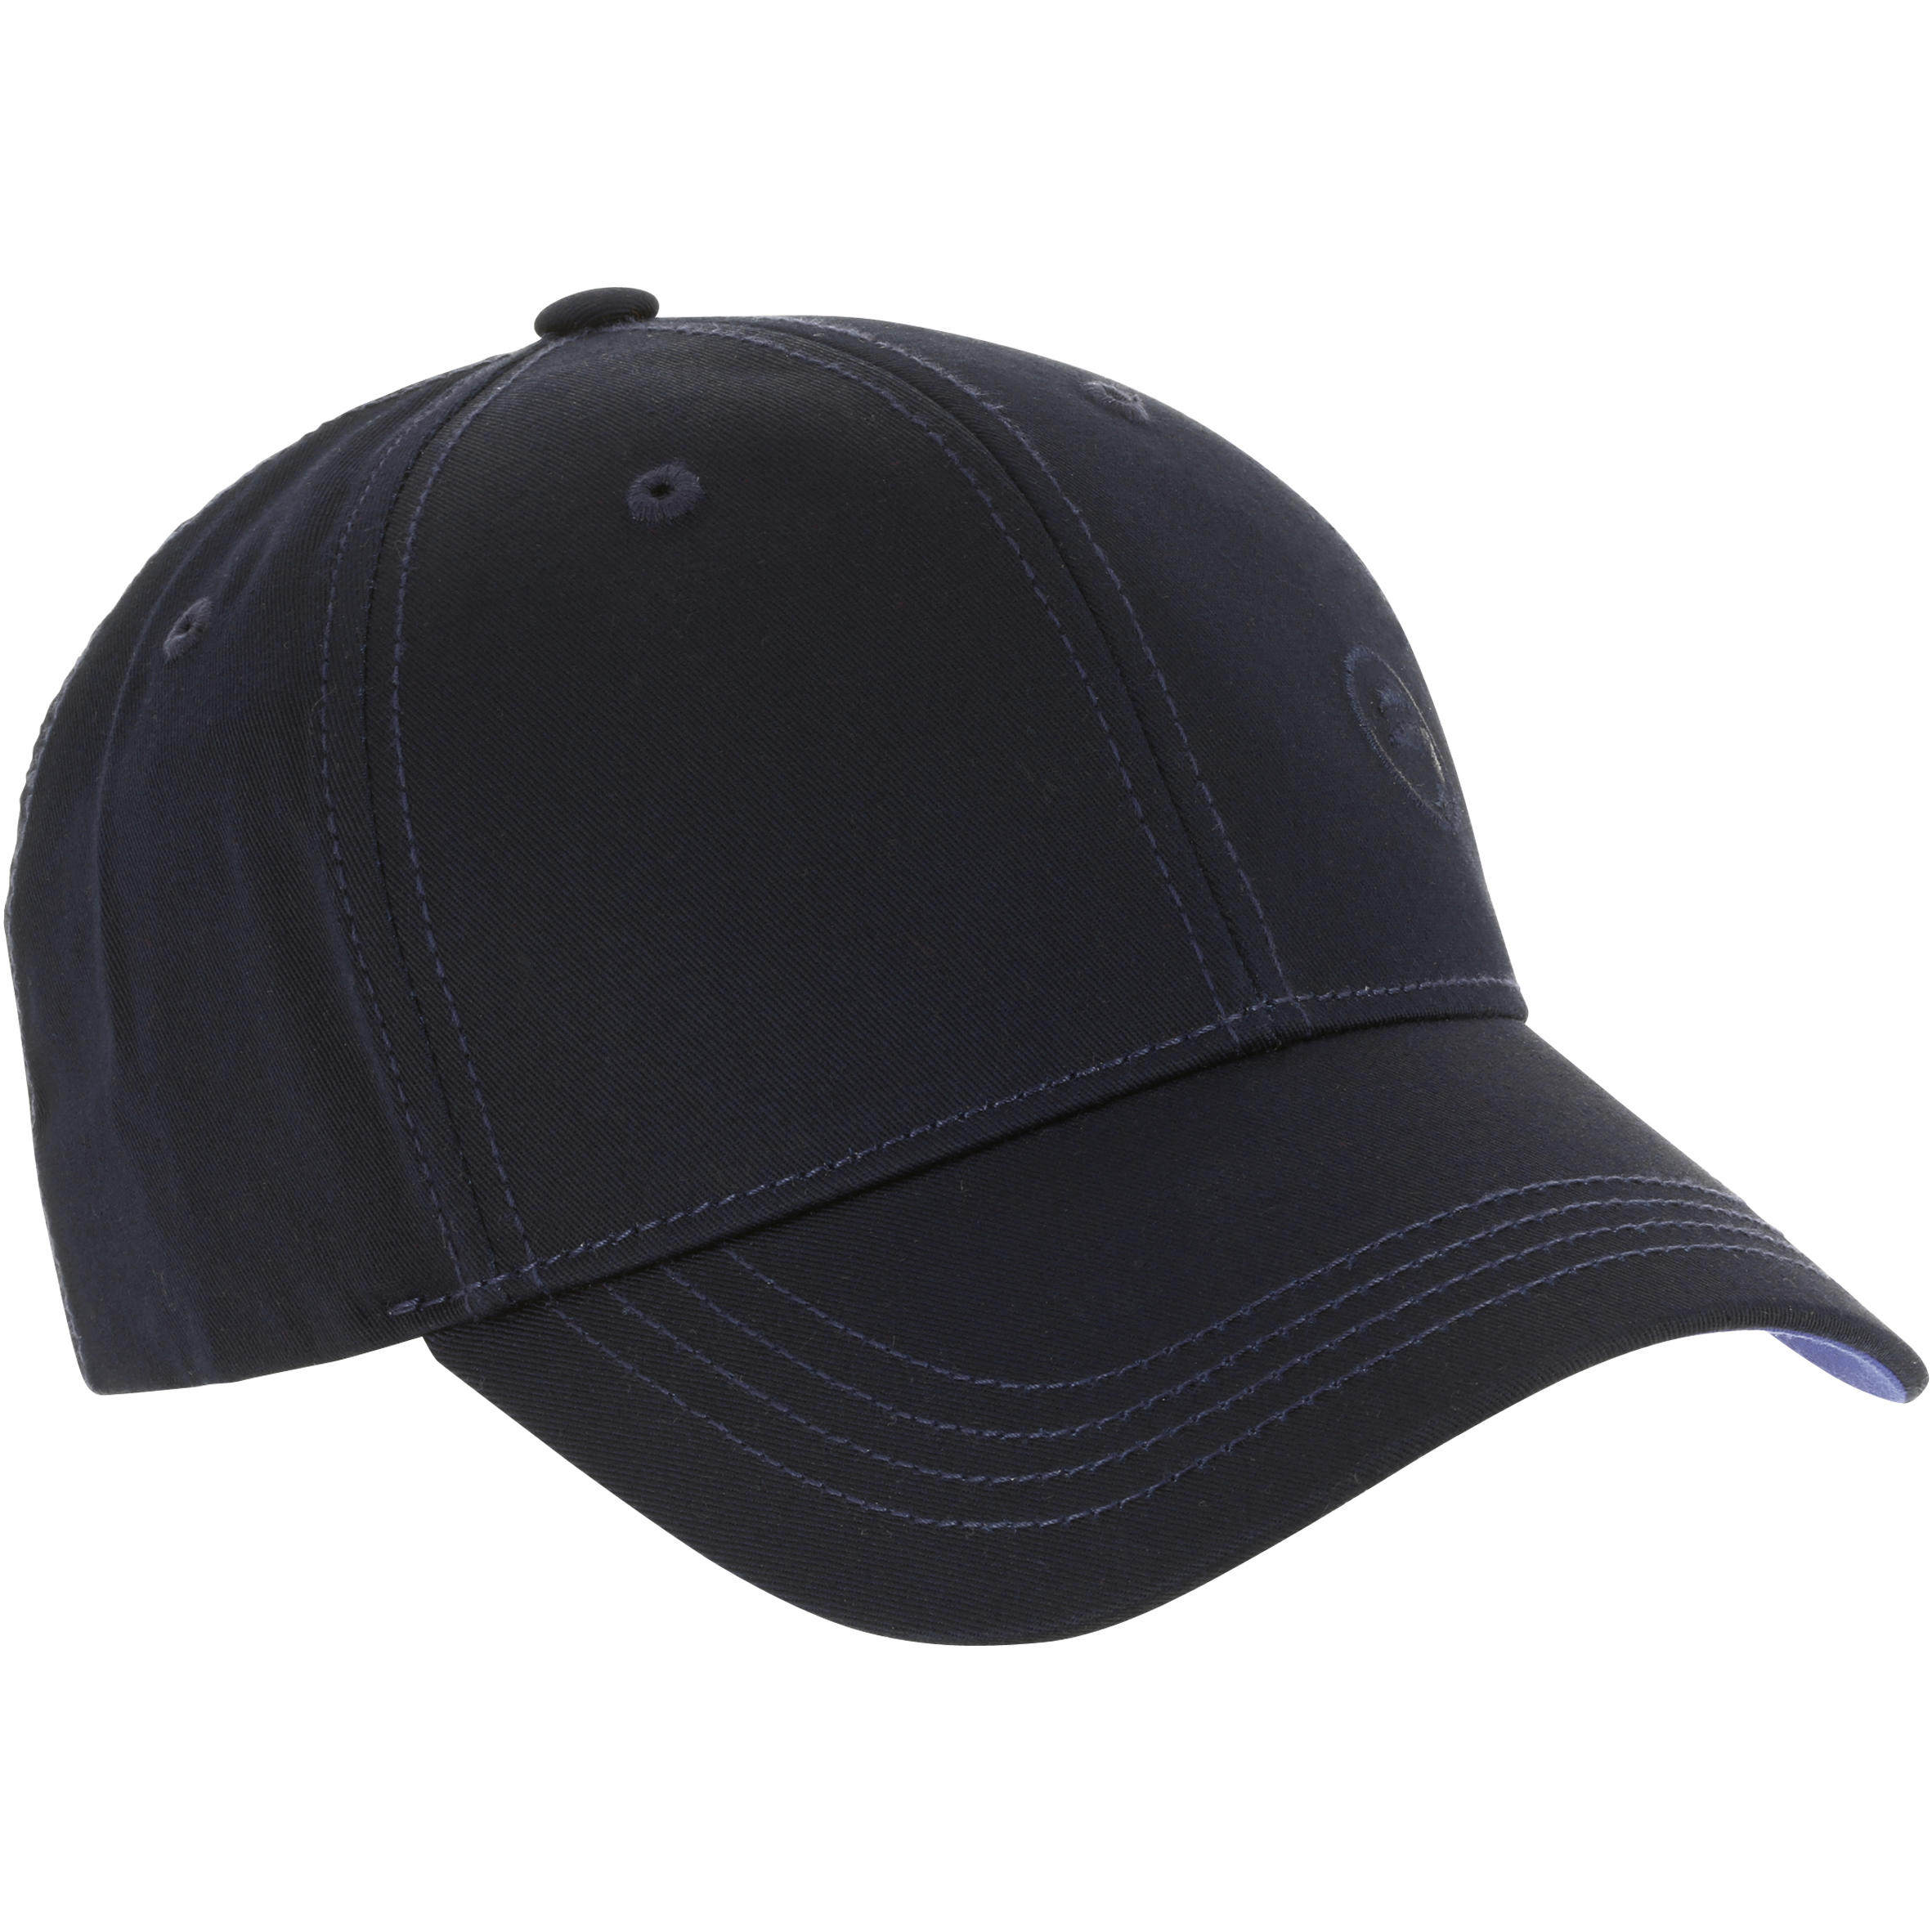 Golf Cap 500 Navy Blue